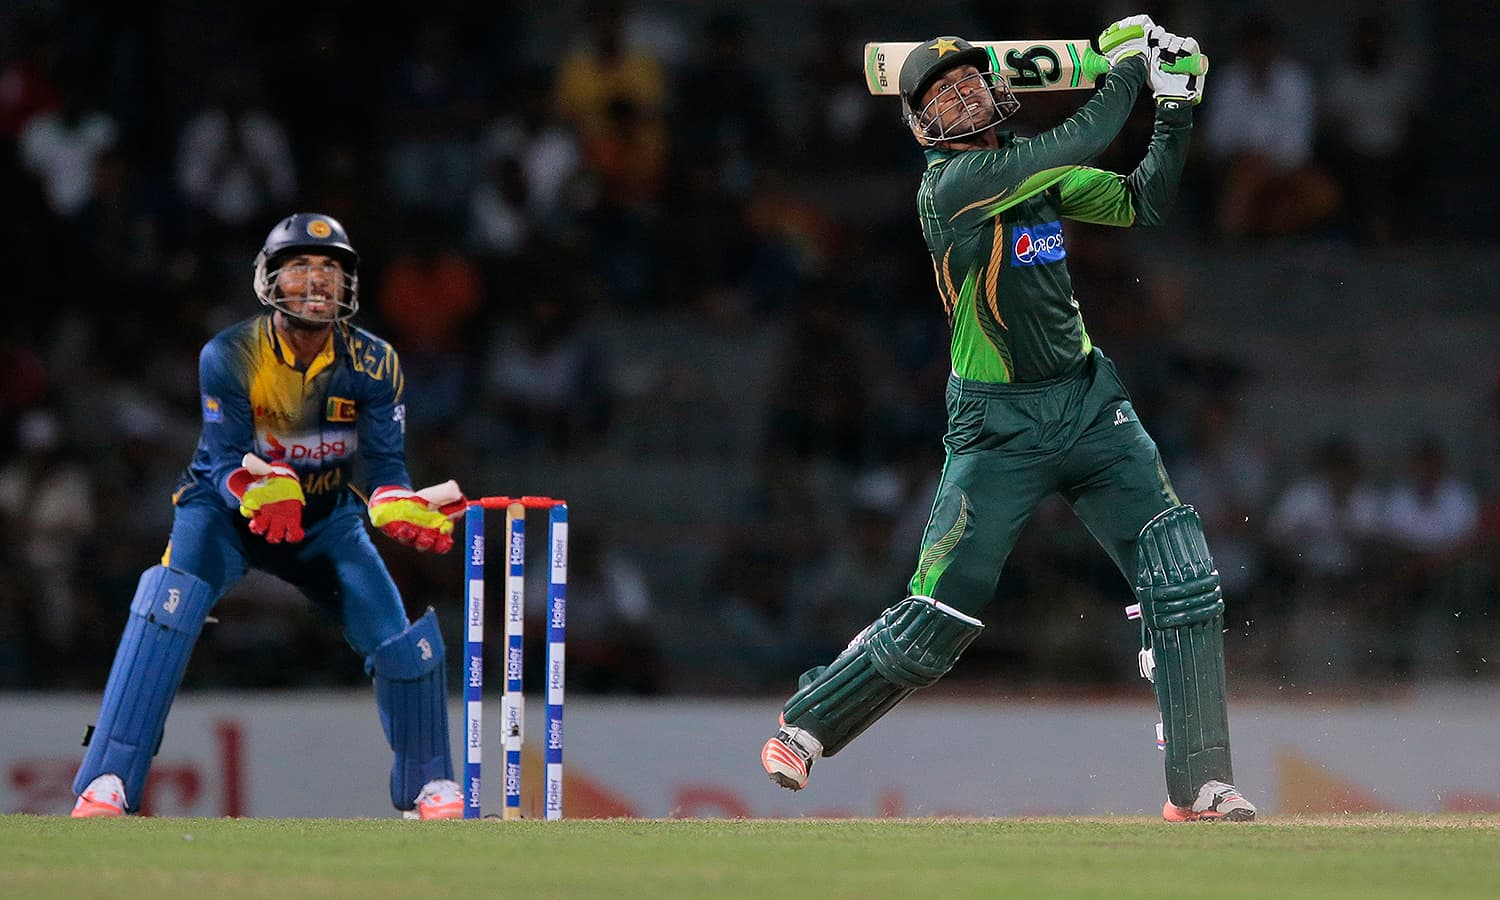 Despite Pakistan's convincing run, there has been plenty of noise from some skeptical critics and fans. — AP